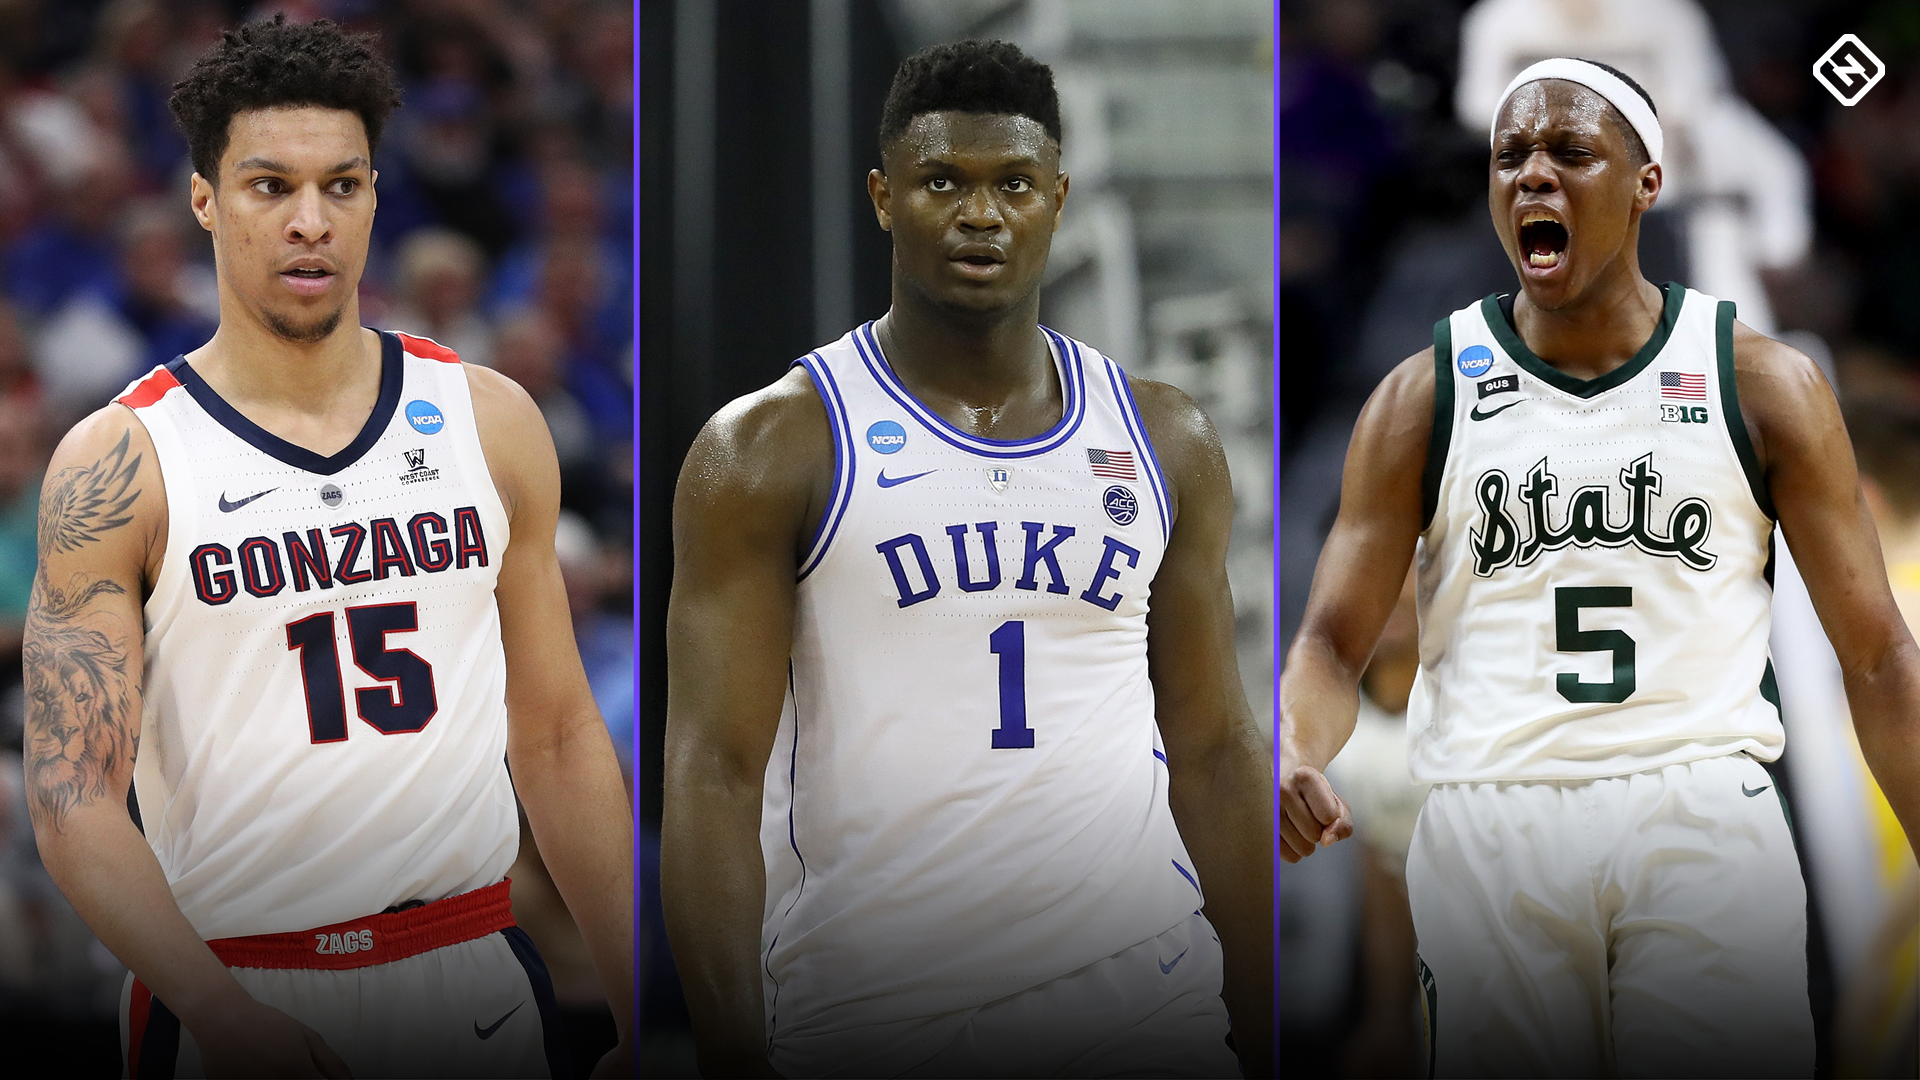 March Madness 2019: Ranking The Sweet 16 Teams' Chances To